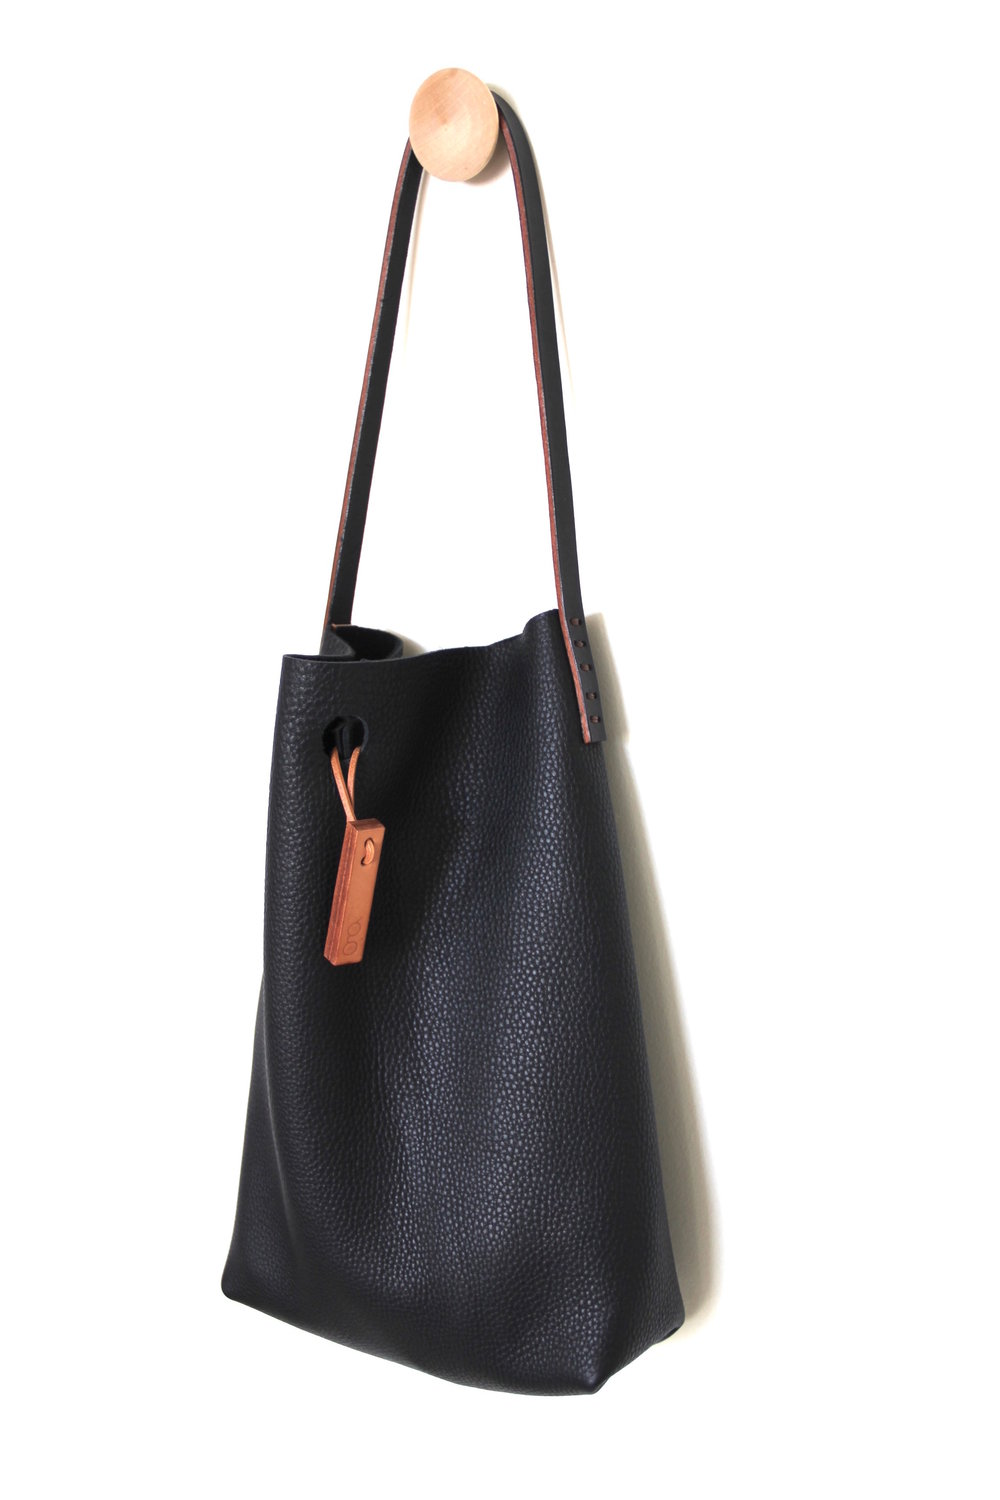 mini.malist leather tote bag in 'caviar'